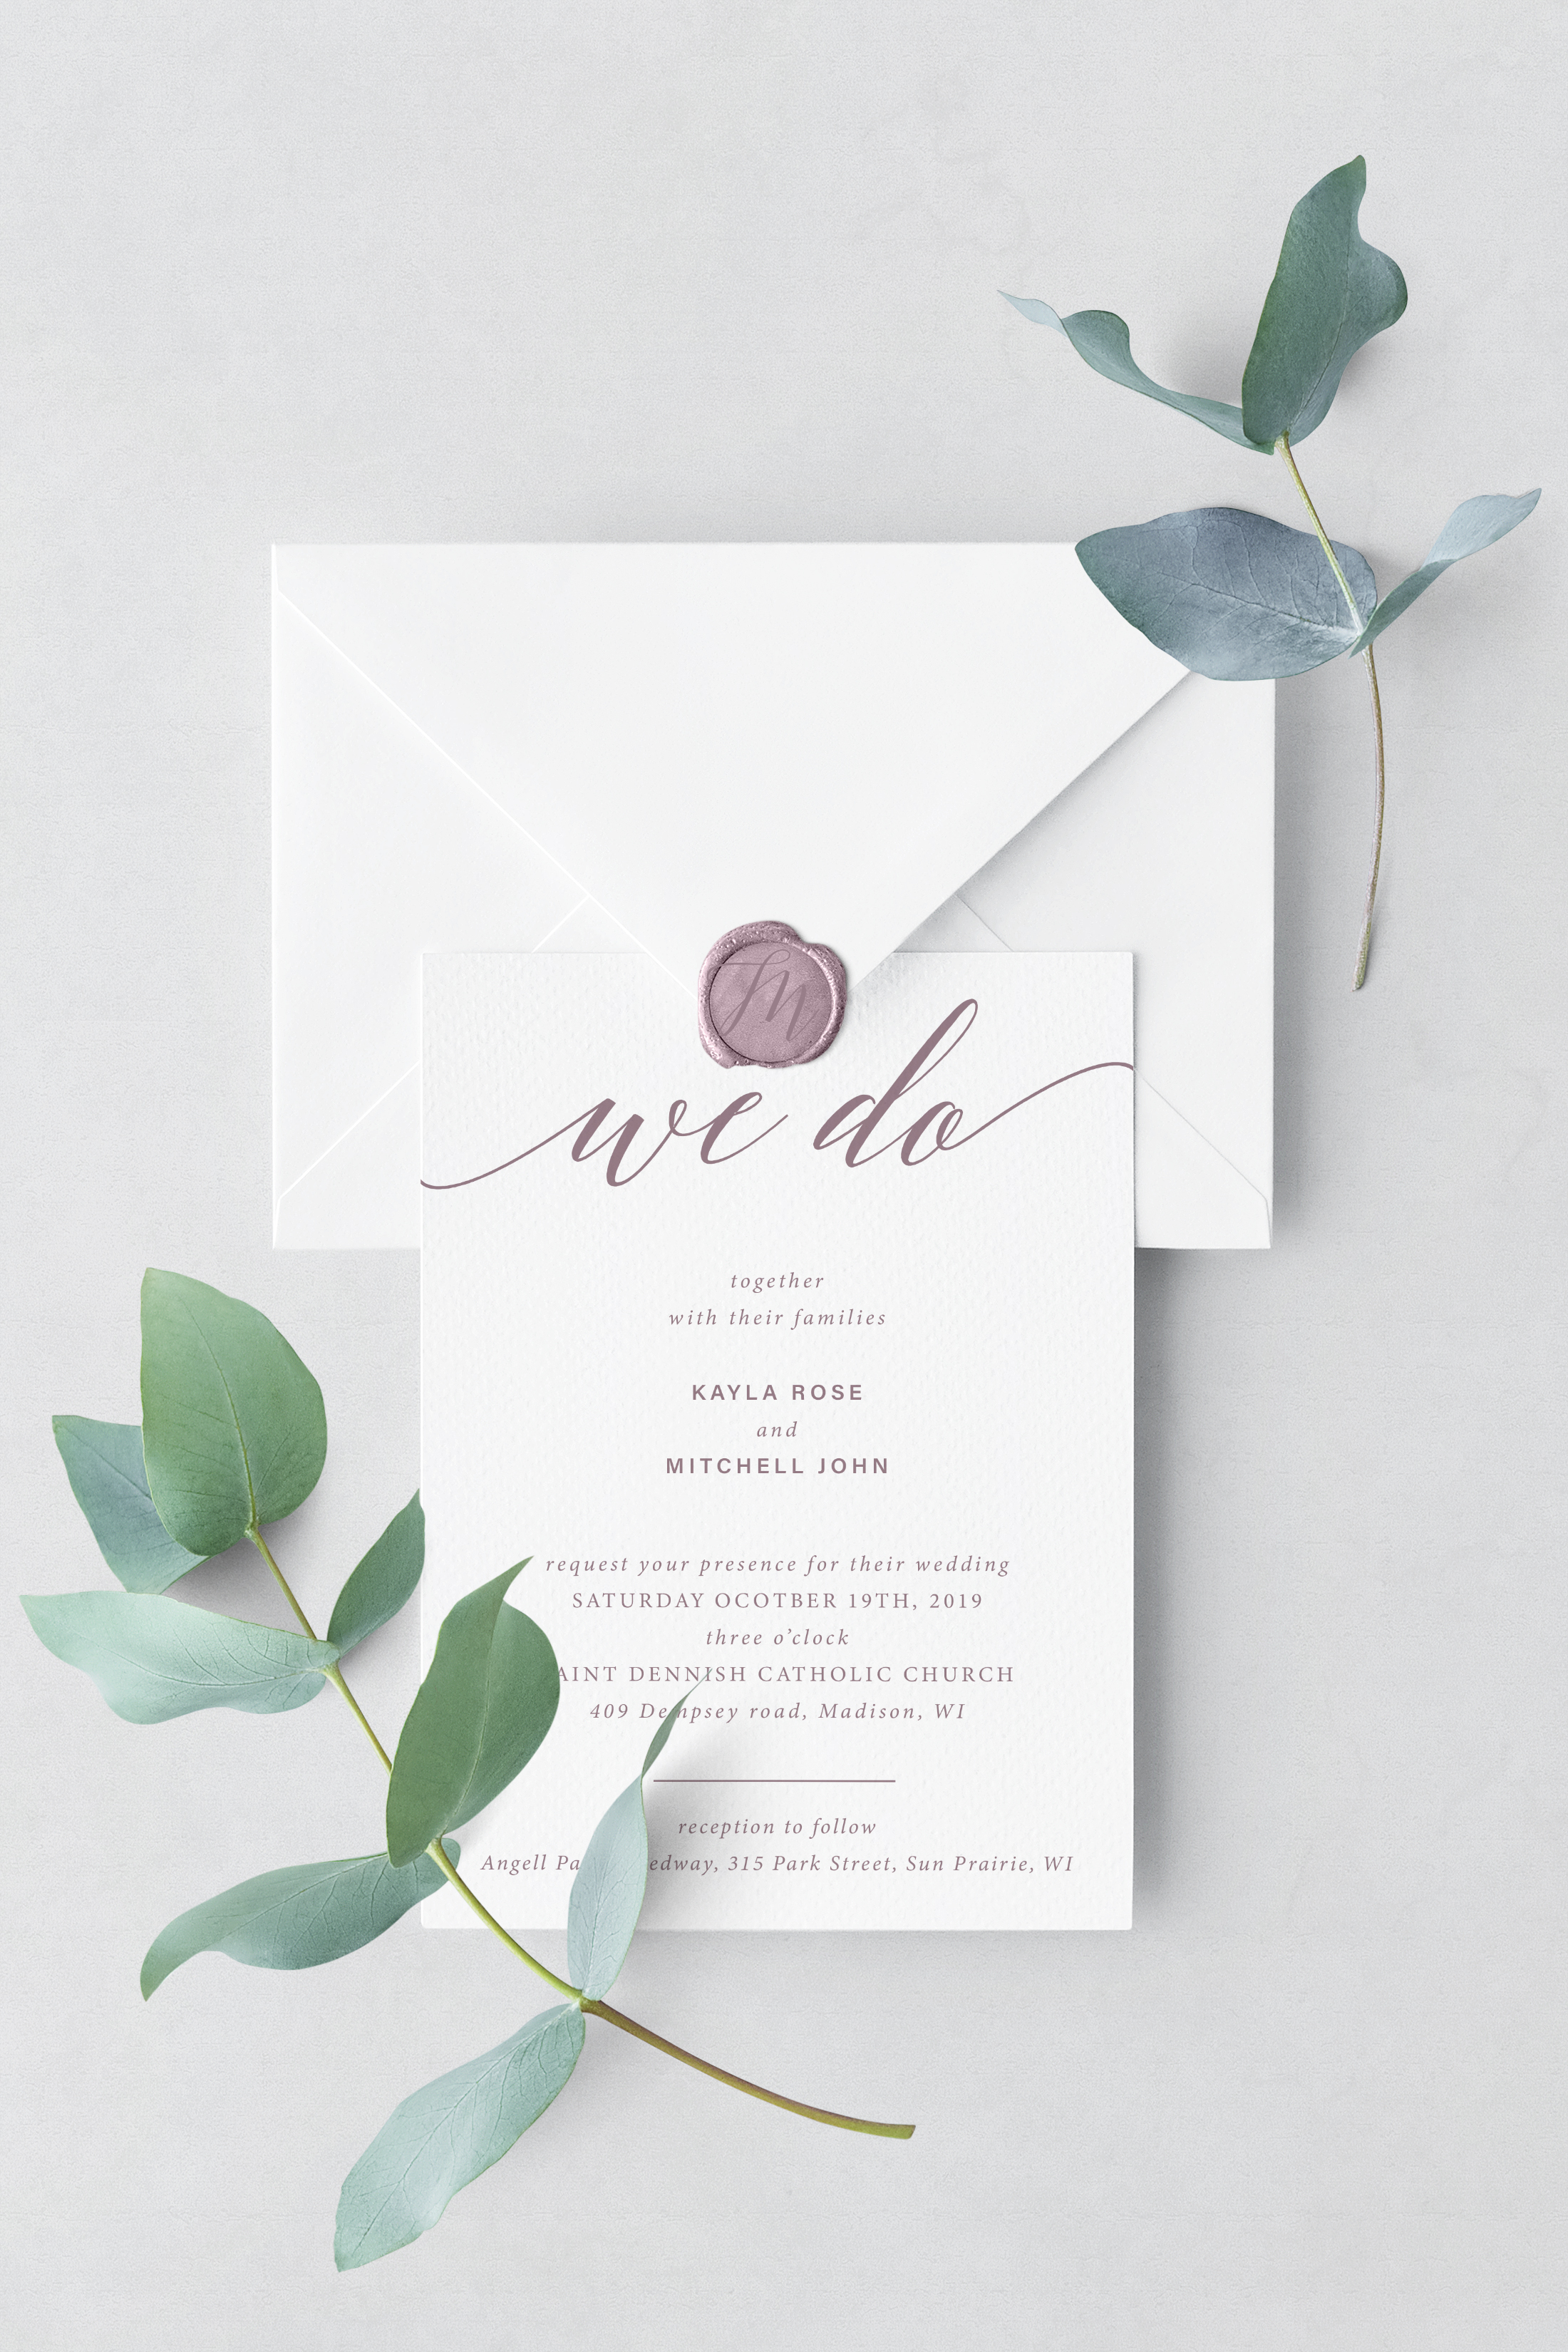 InvitationCardMockUp.jpg